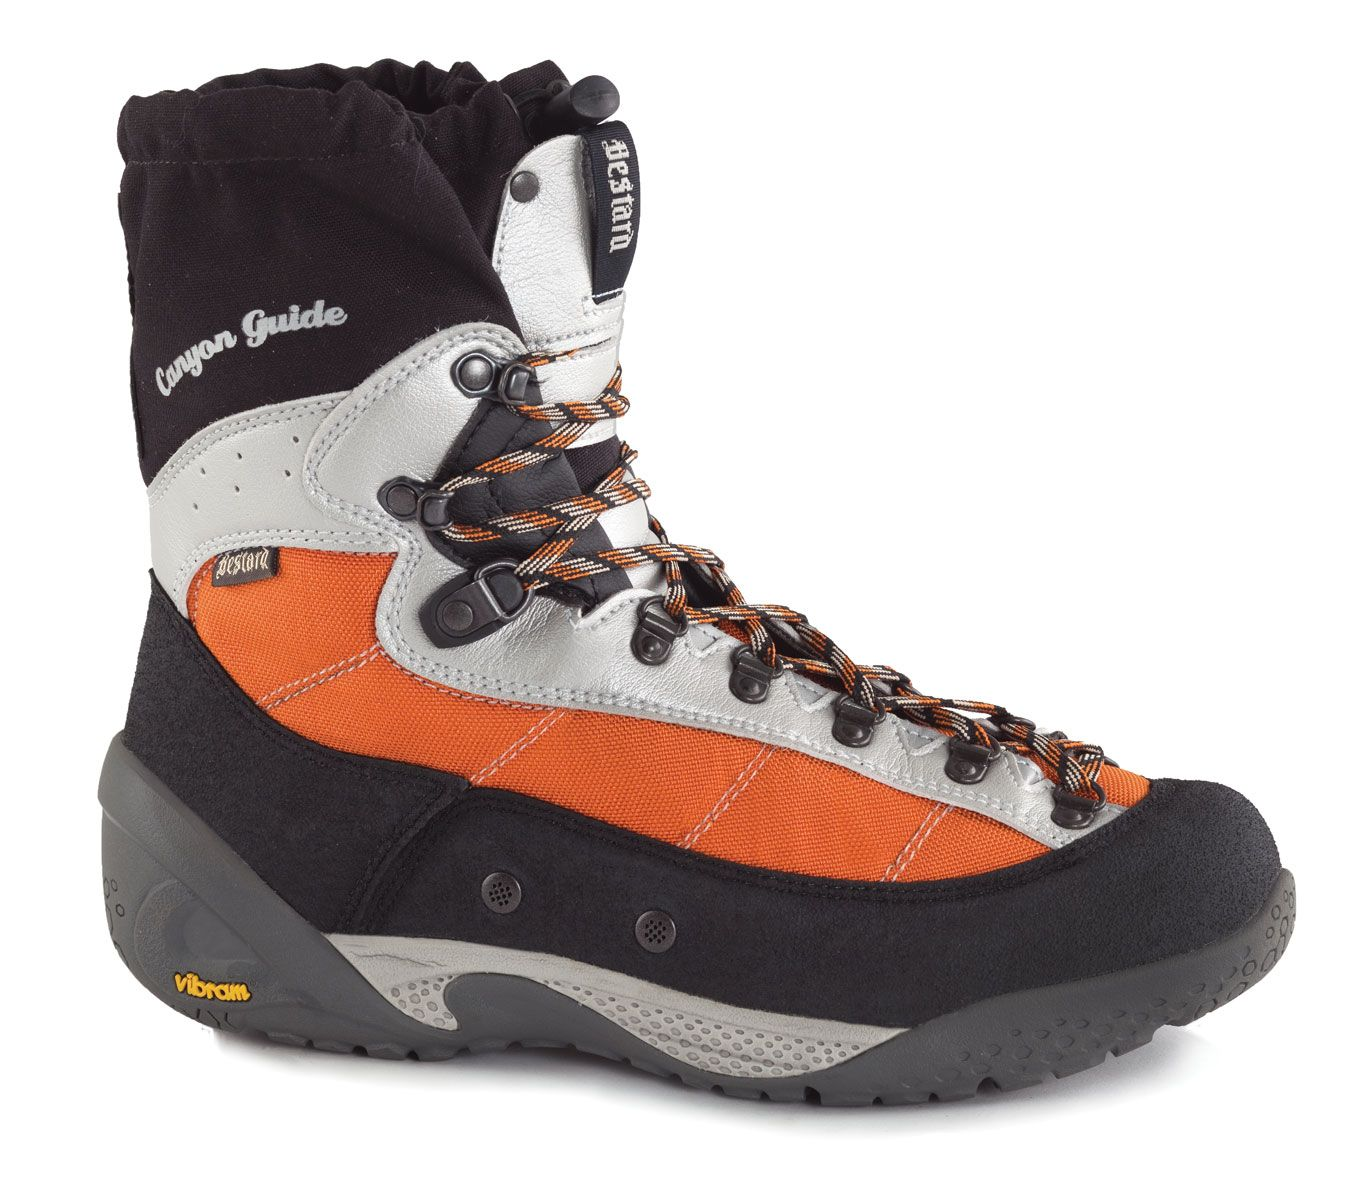 Chaussures Canyon Guide - BESTARD